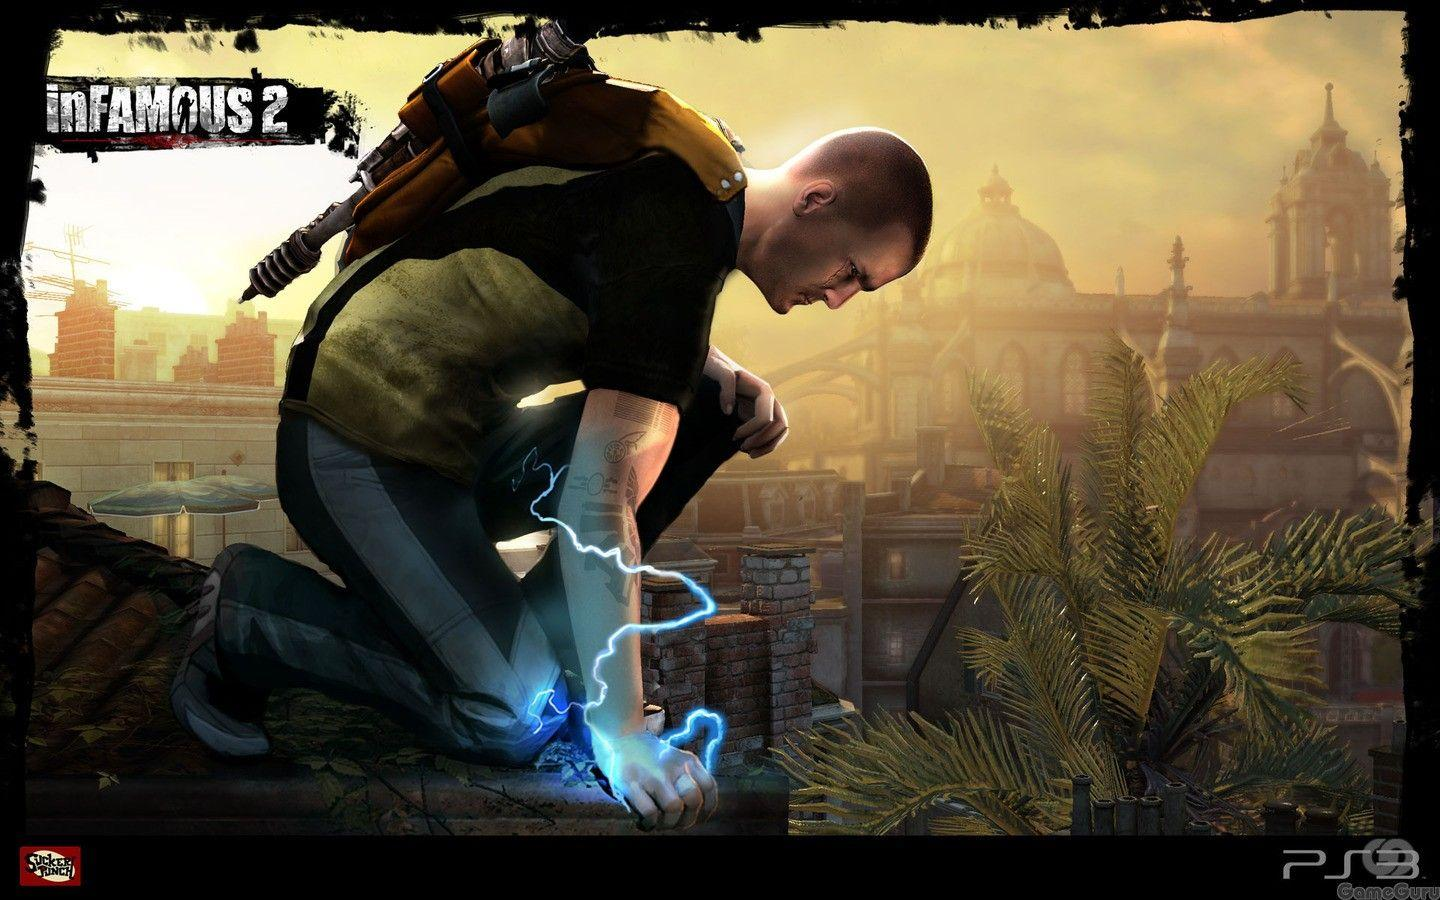 Download the inFamous 2 Wallpaper, inFamous 2 iPhone Wallpapers